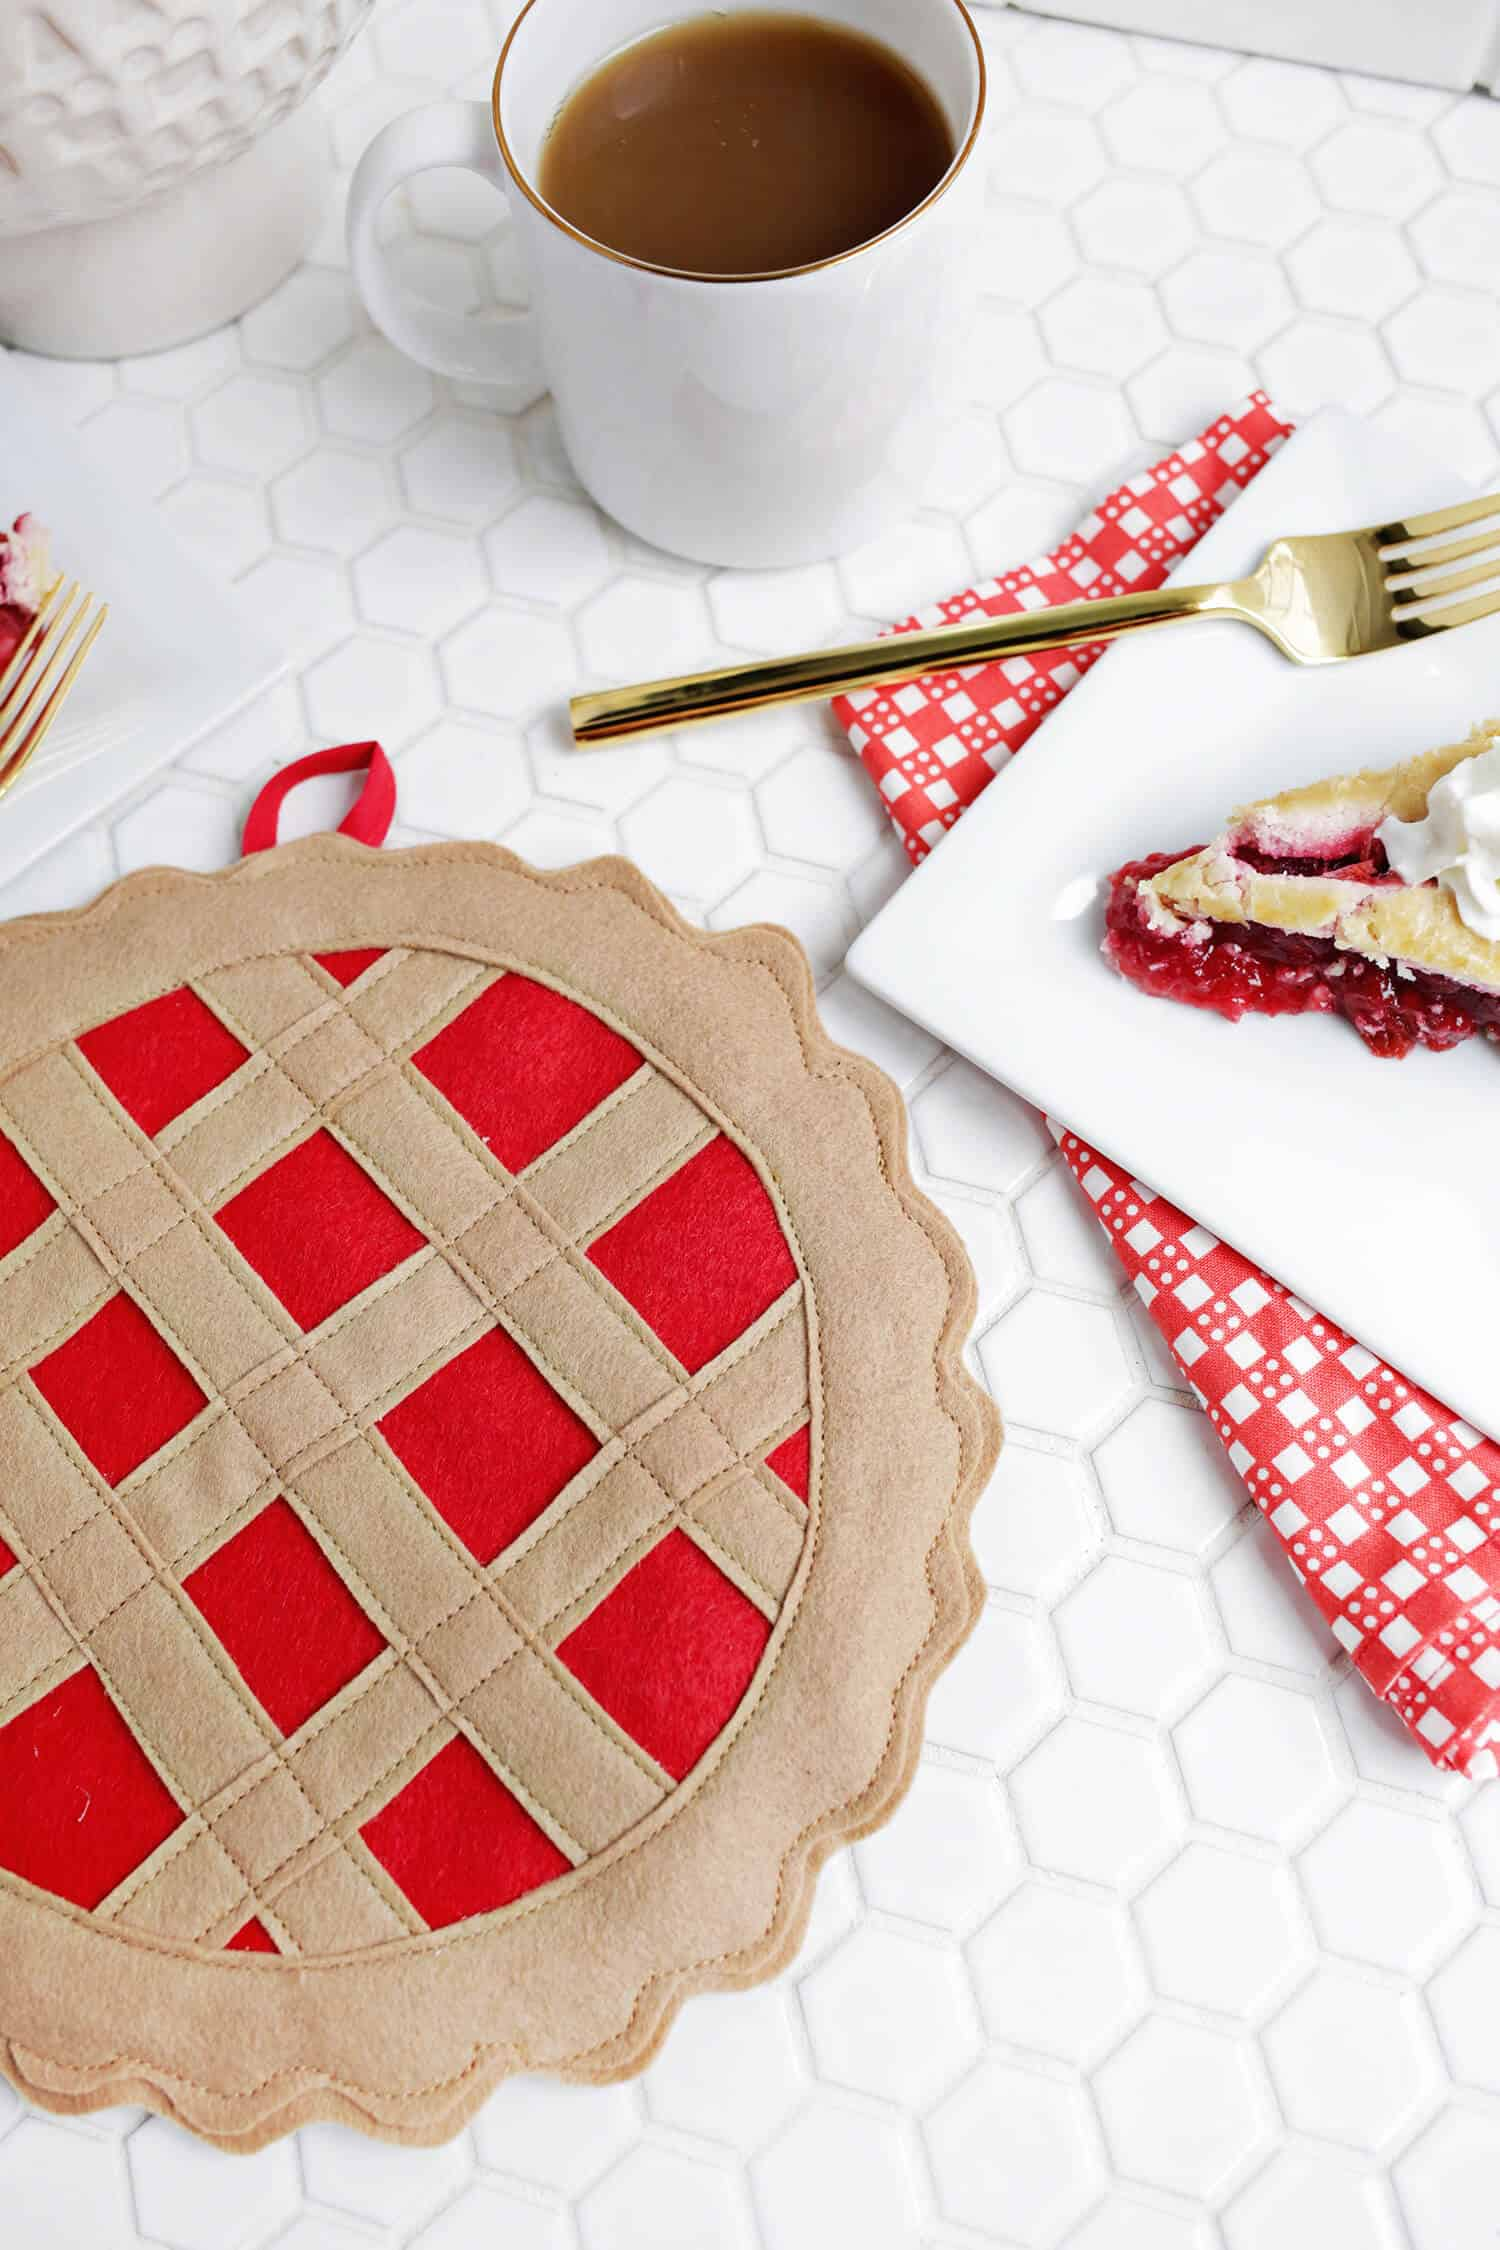 Diy cherry pie potholder